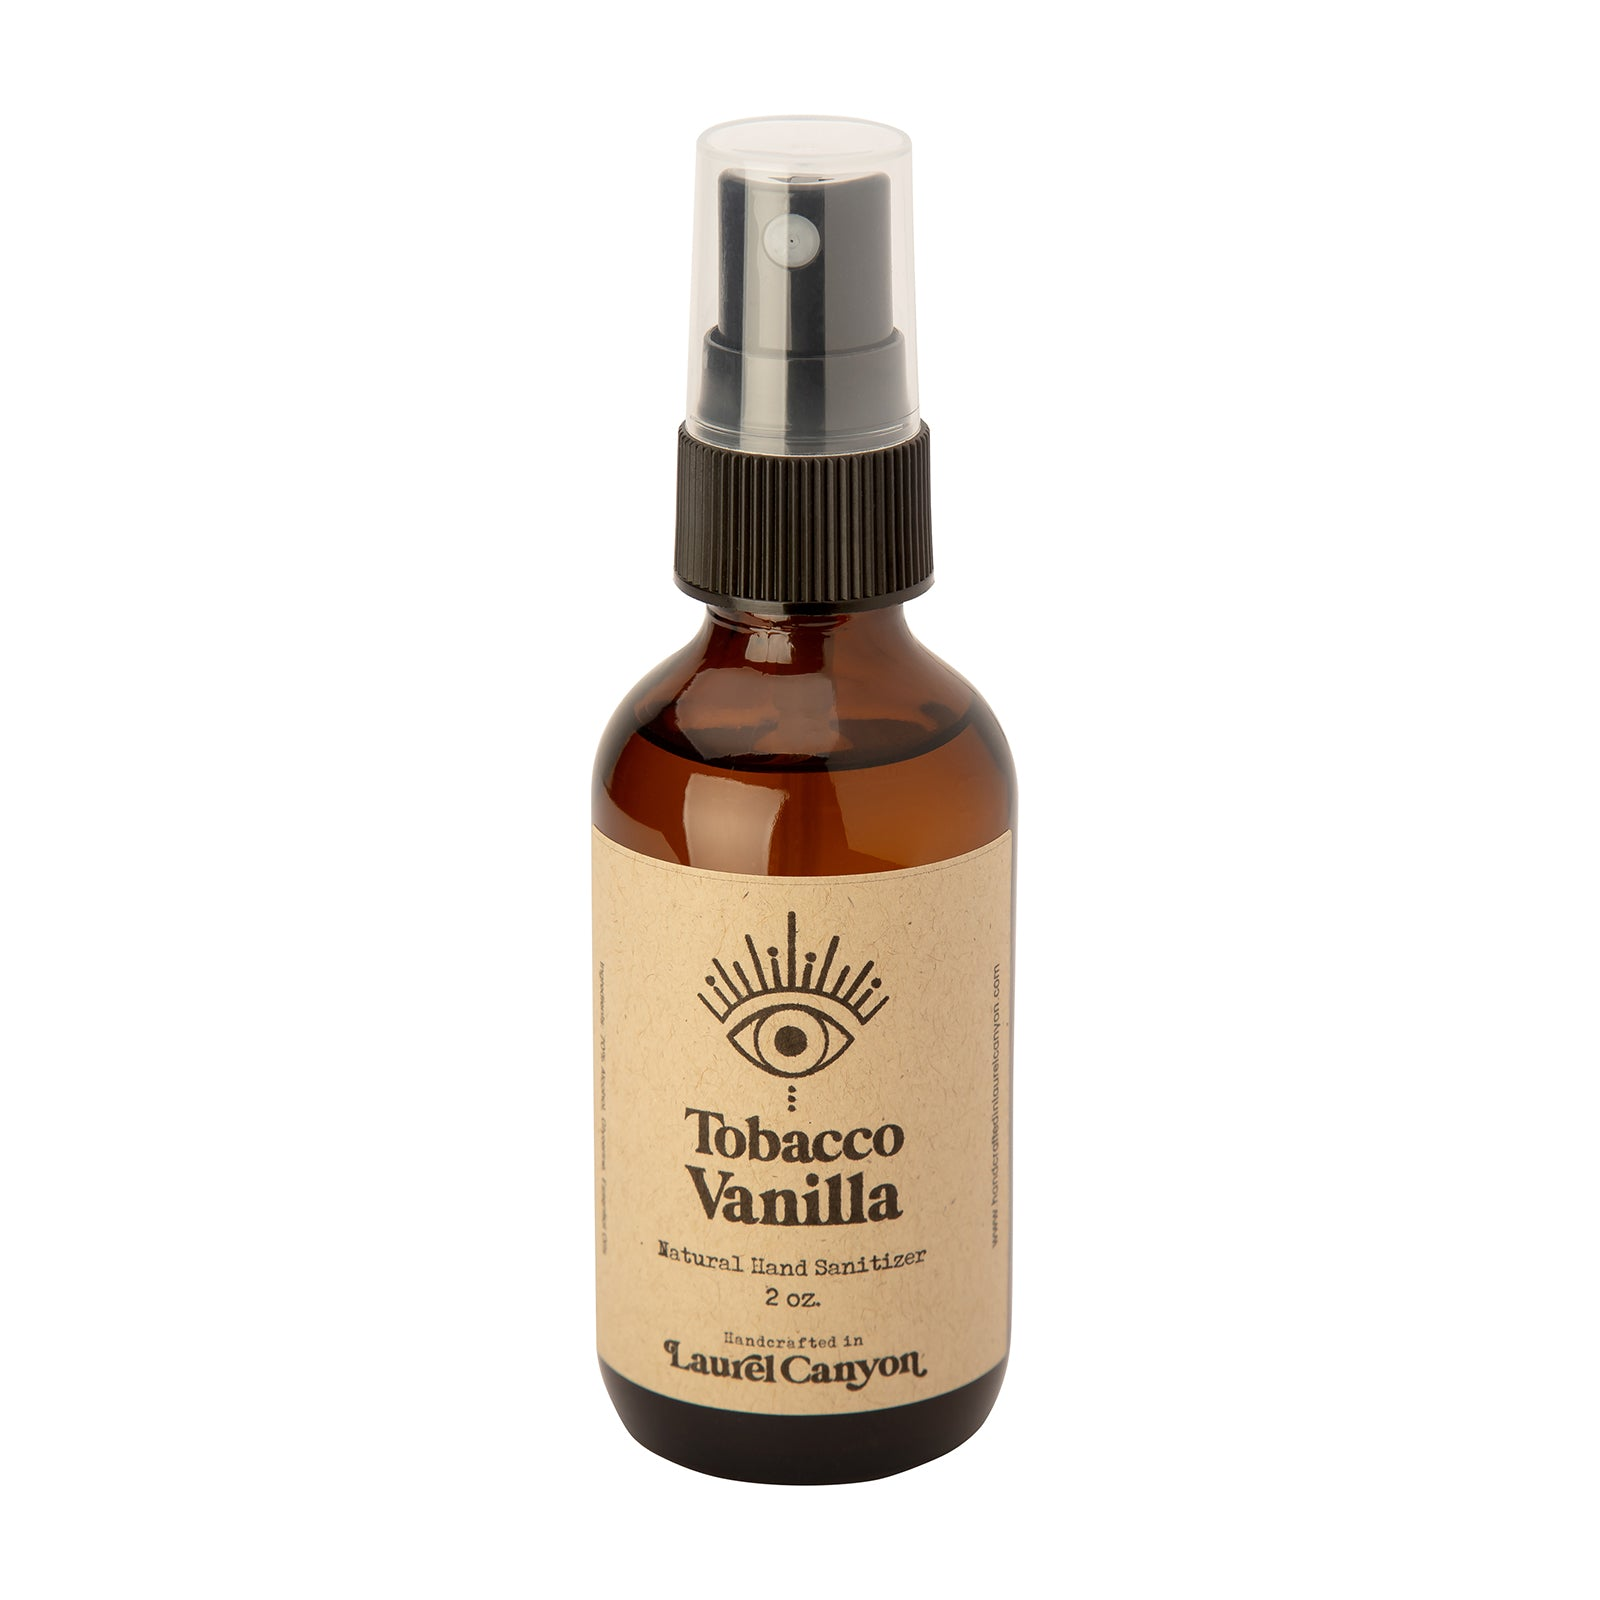 Handcrafted In Laurel Canyon Hand Sanitizer - Tobacco Vanilla - Home & Decor - Broken English Jewelry